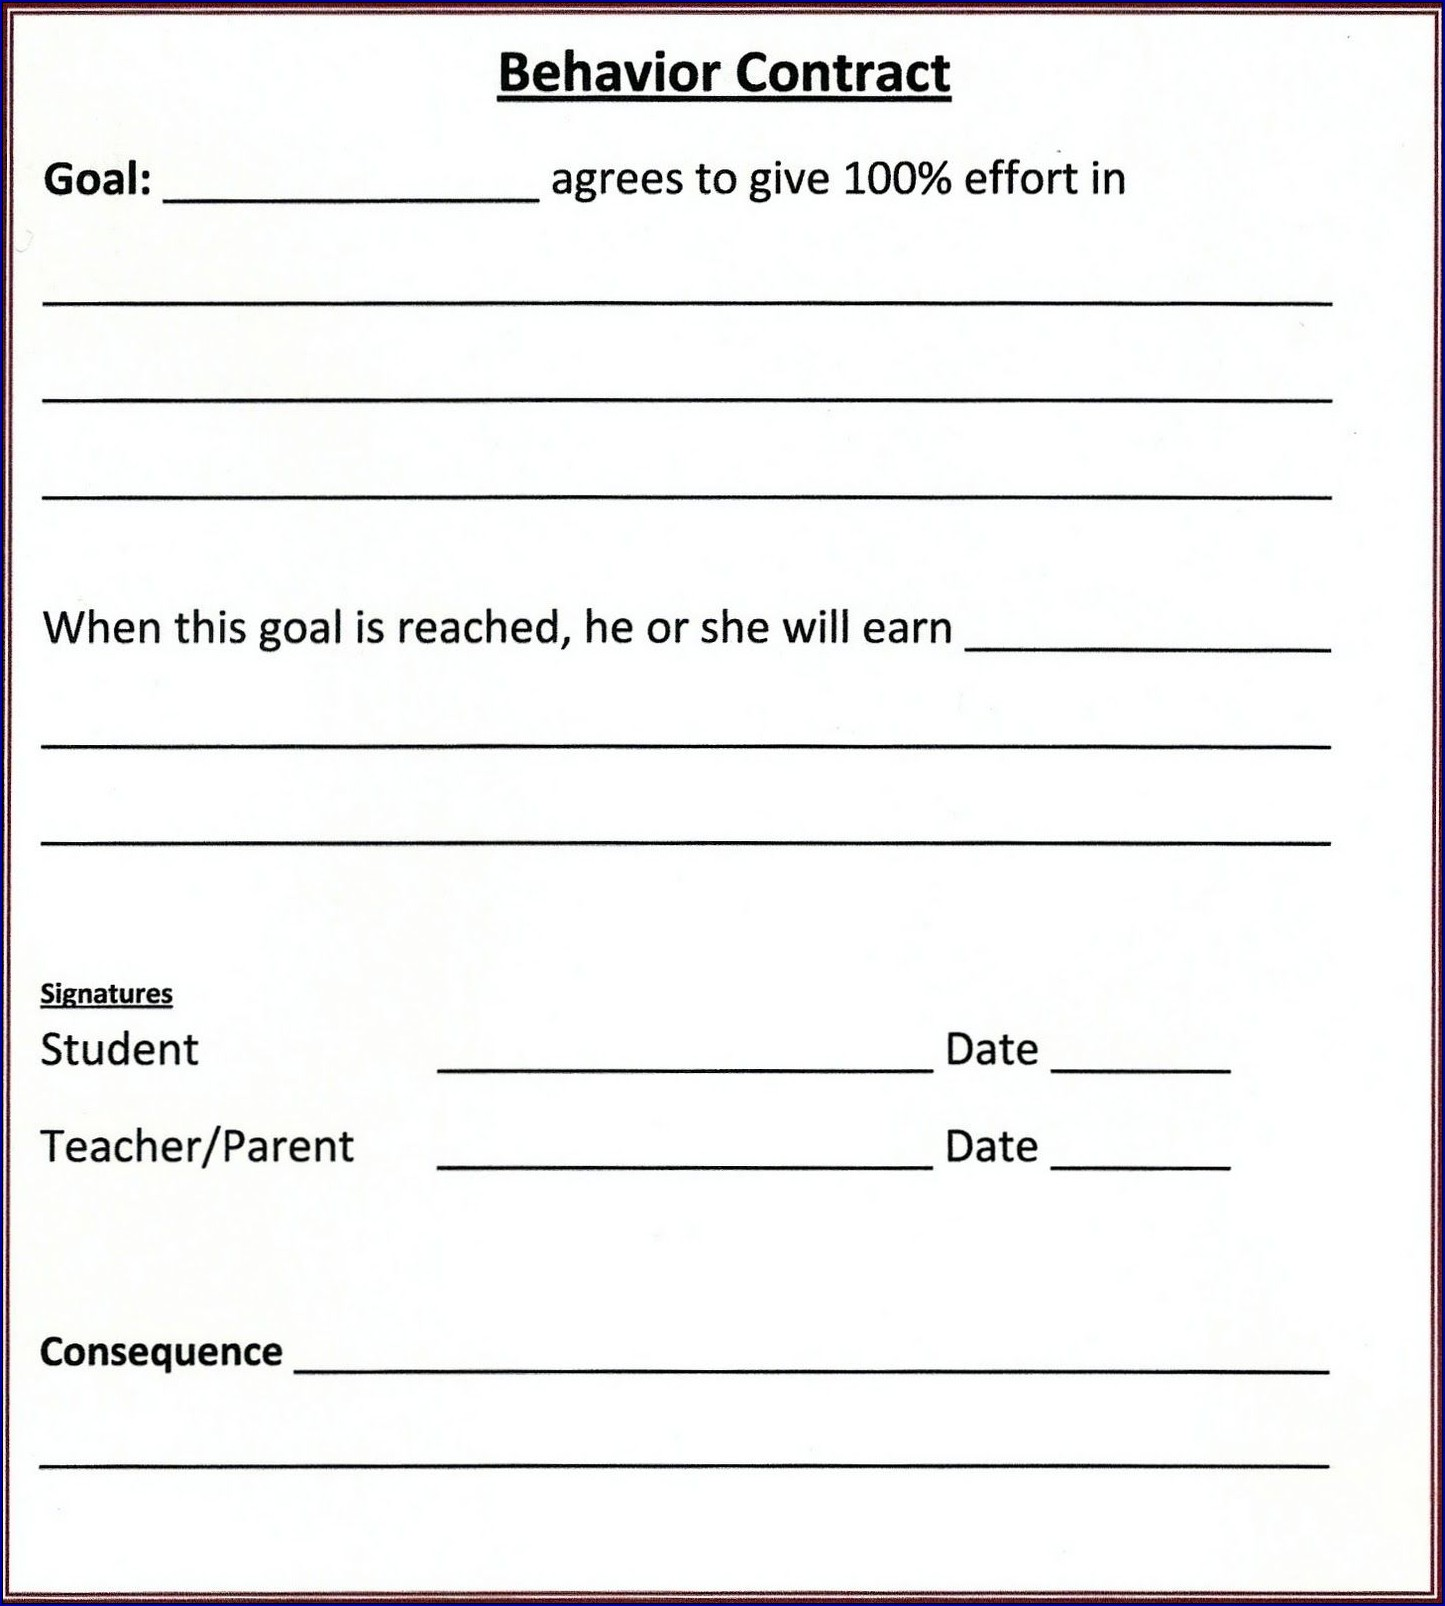 Behavior Contract for Adults Sample